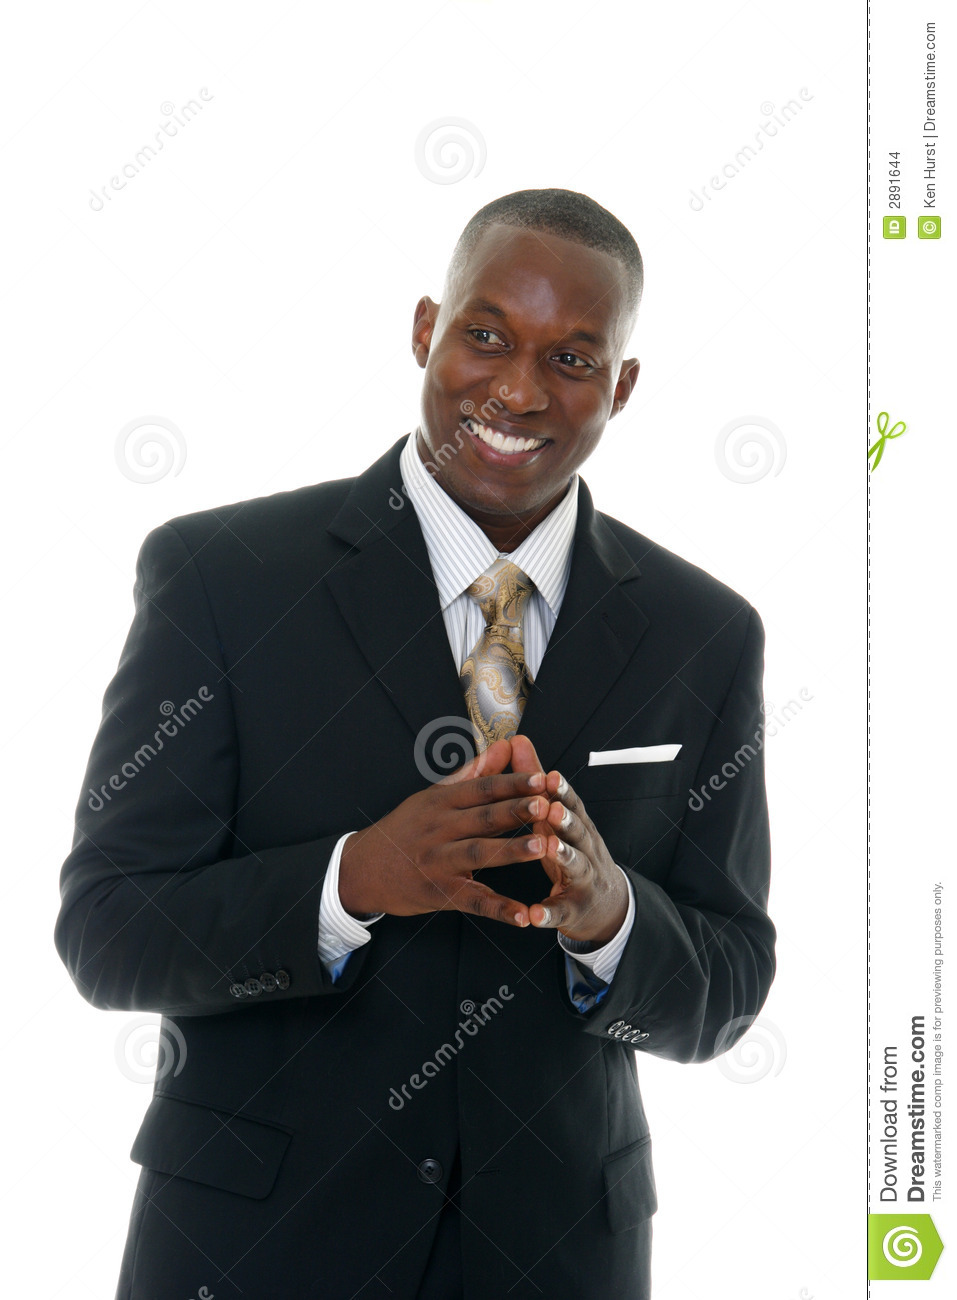 Business Man In Black Suit 4 Stock Images - Image: 2891644